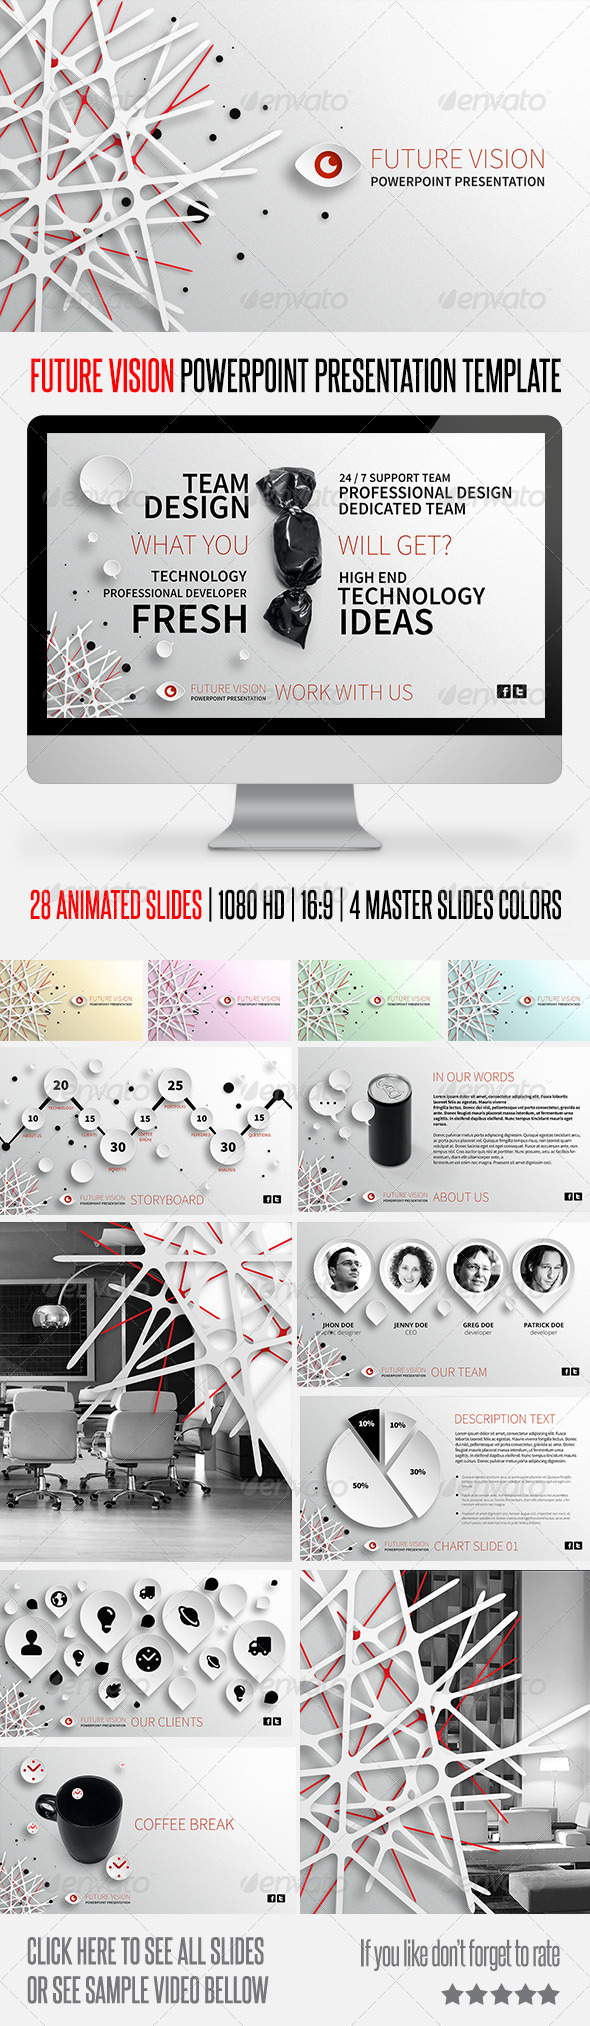 pin by share something on something design on graphicriver